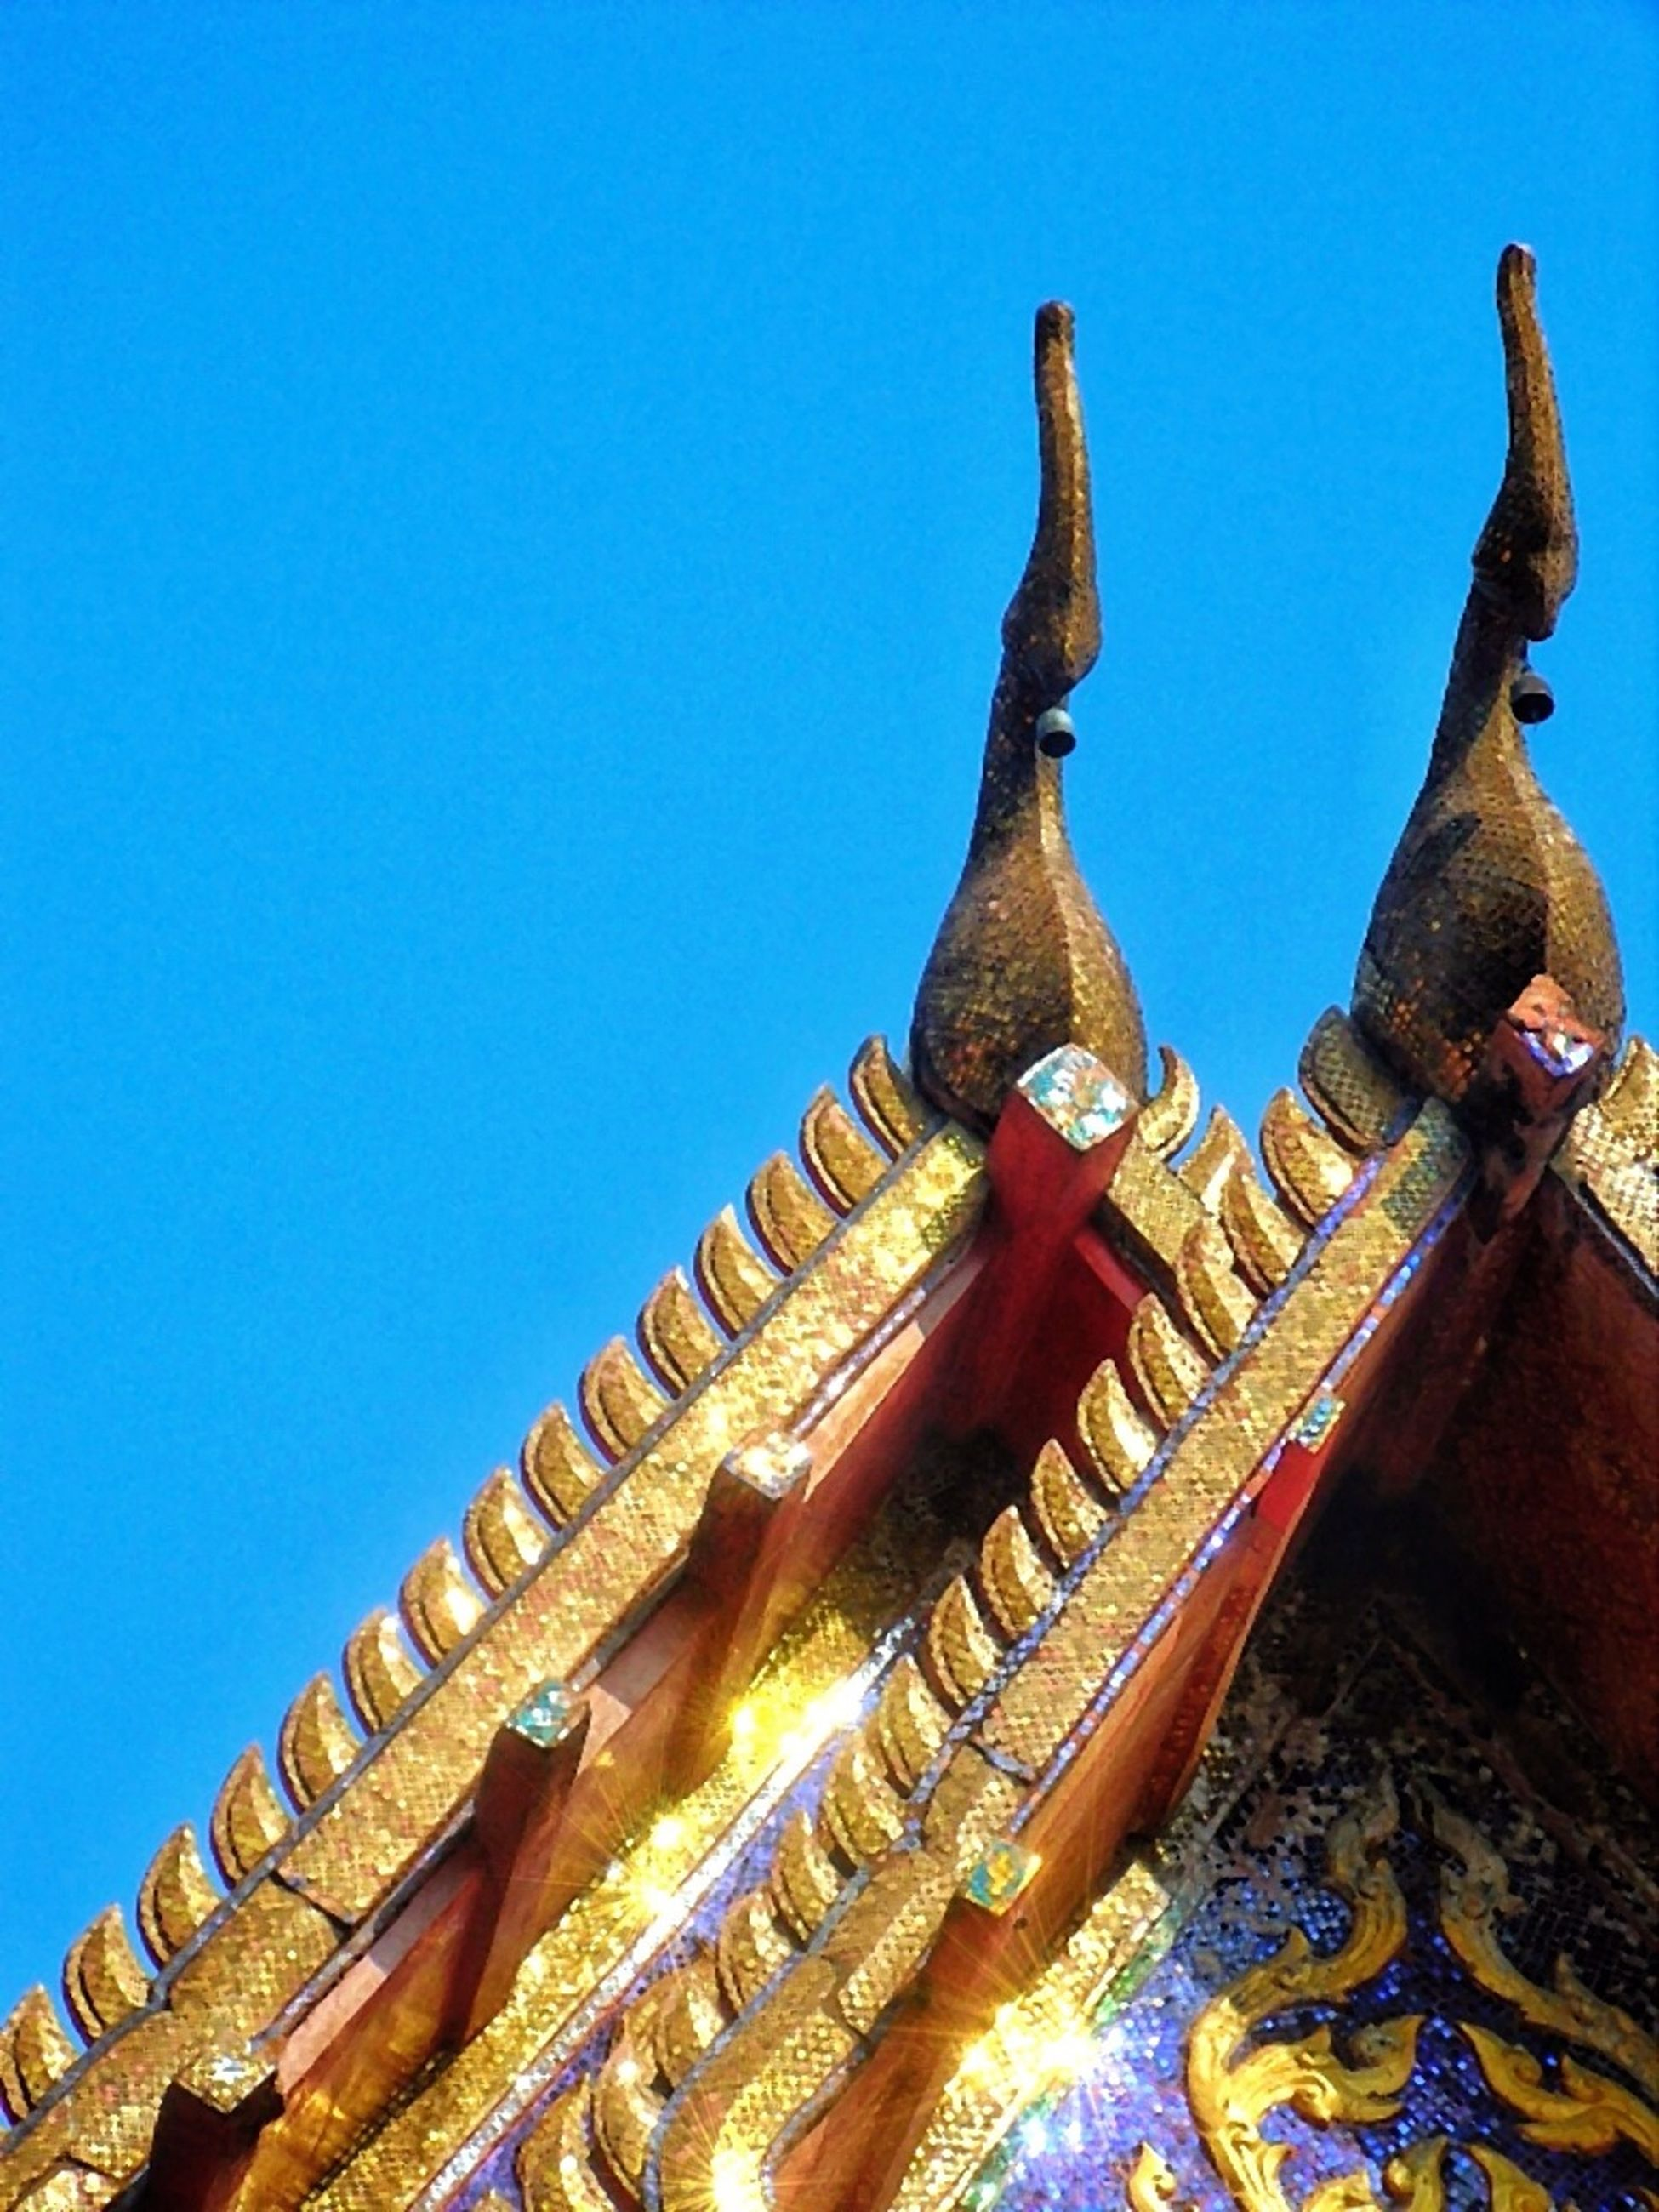 blue, clear sky, low angle view, copy space, roof, built structure, art and craft, building exterior, architecture, outdoors, art, no people, day, part of, creativity, temple - building, sunlight, religion, high section, multi colored